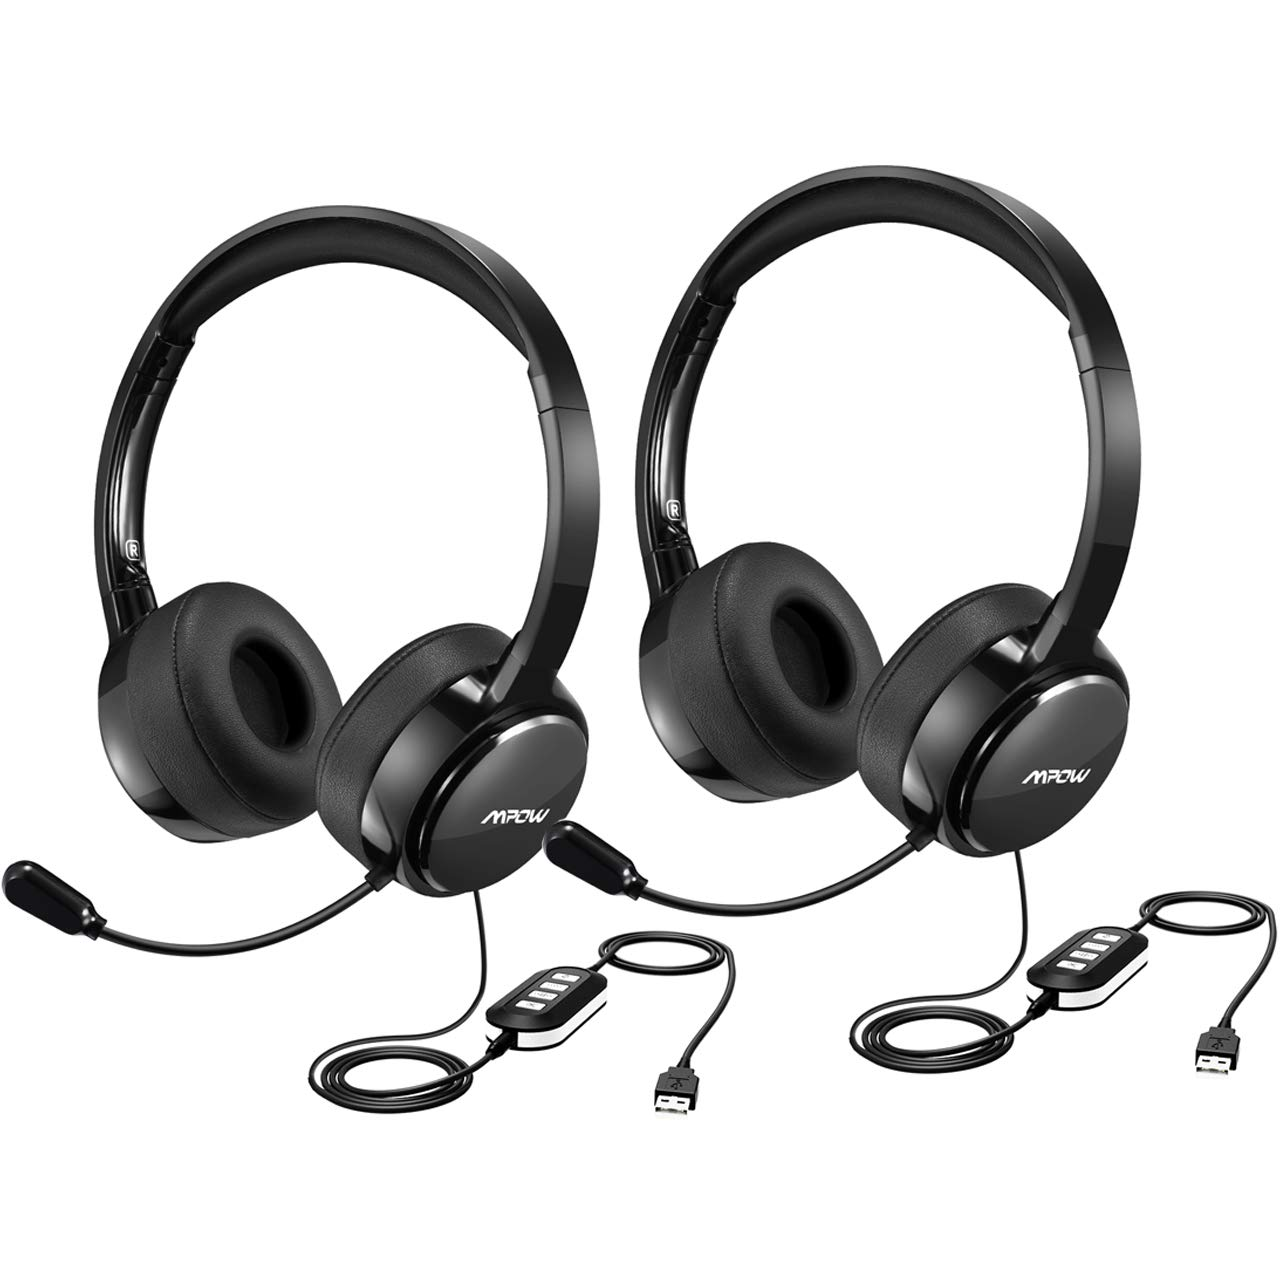 Mpow Upgraded USB Headset with 3.5mm Jack, Lightweight Computer Headset with Noise Cancelling Microphone, Comfy Earmuffs, Wired Headphones for PC, Skype, Phone (2 Pack)